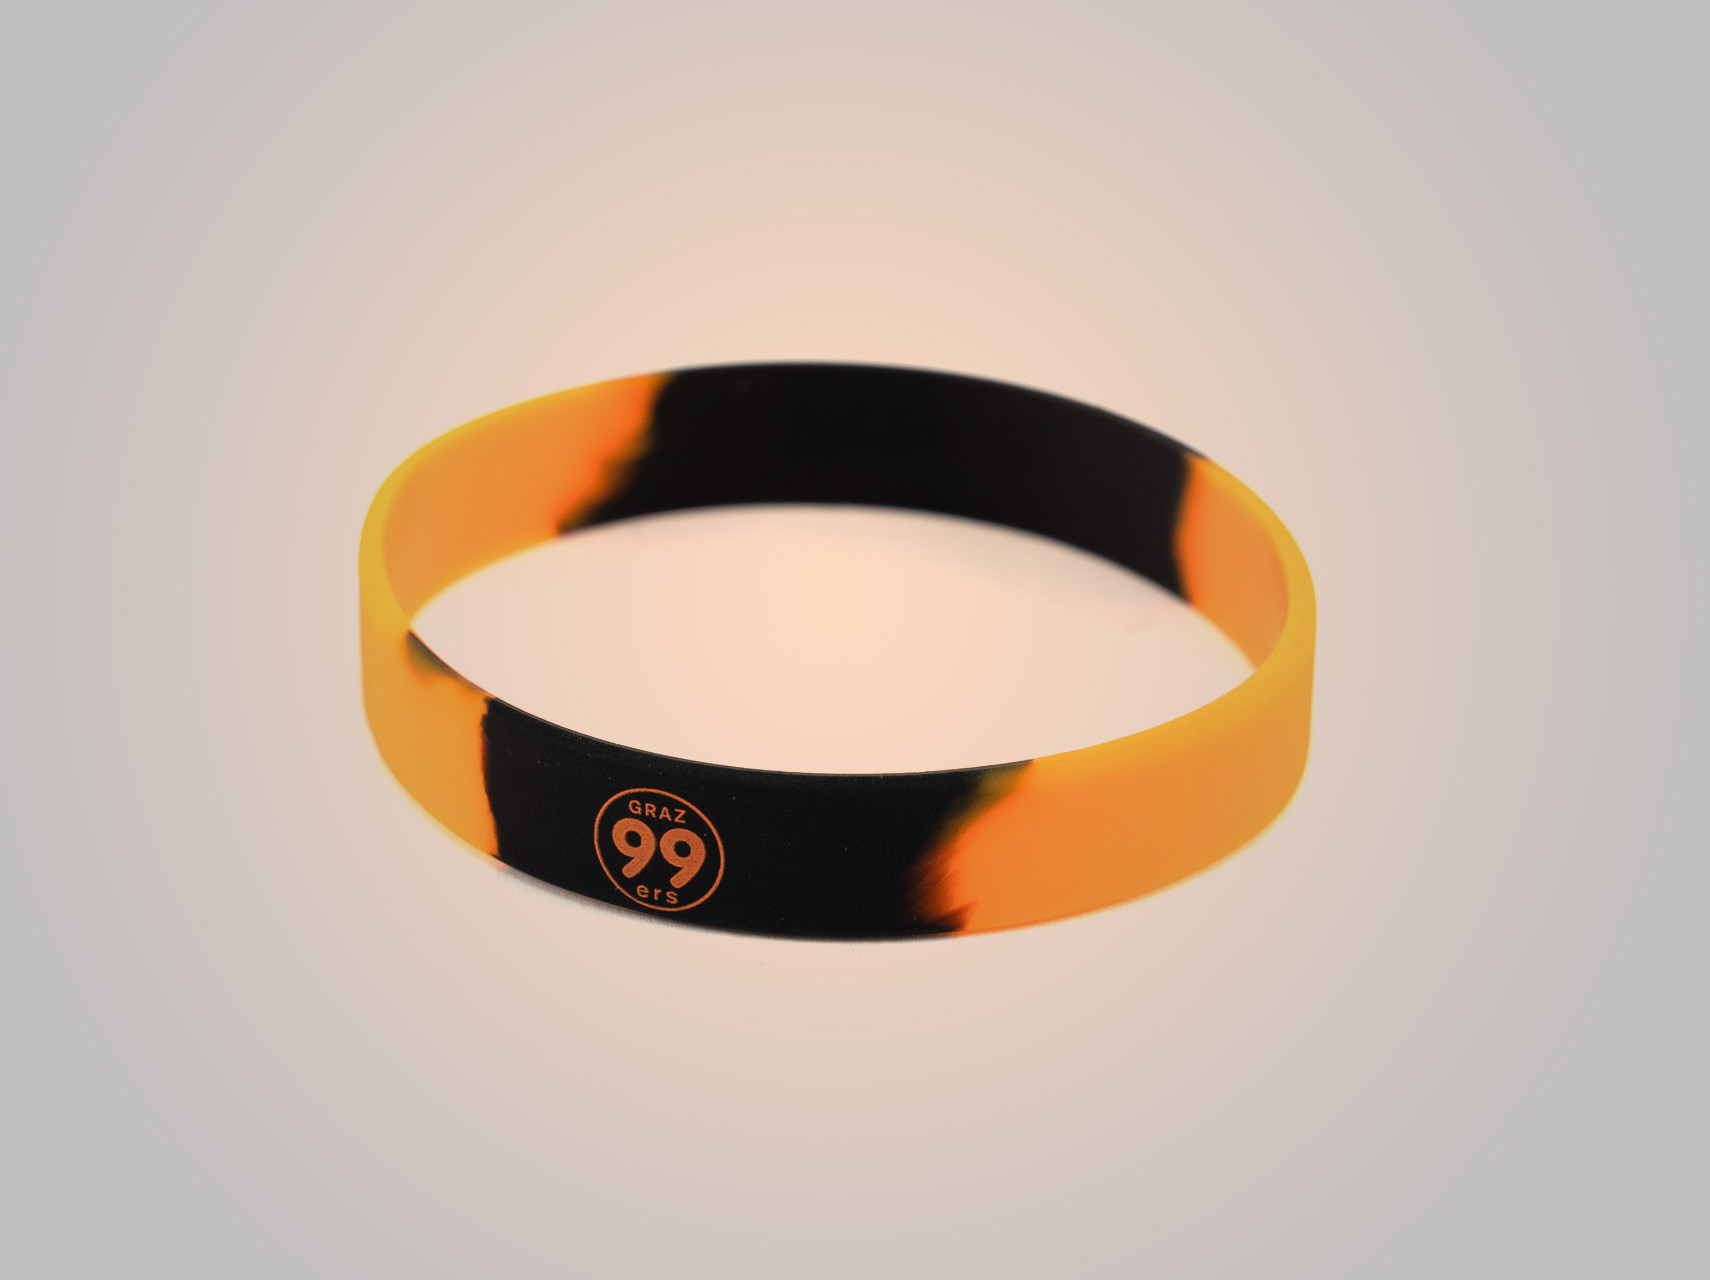 99ers ID Band - Moser Medical Graz99ers